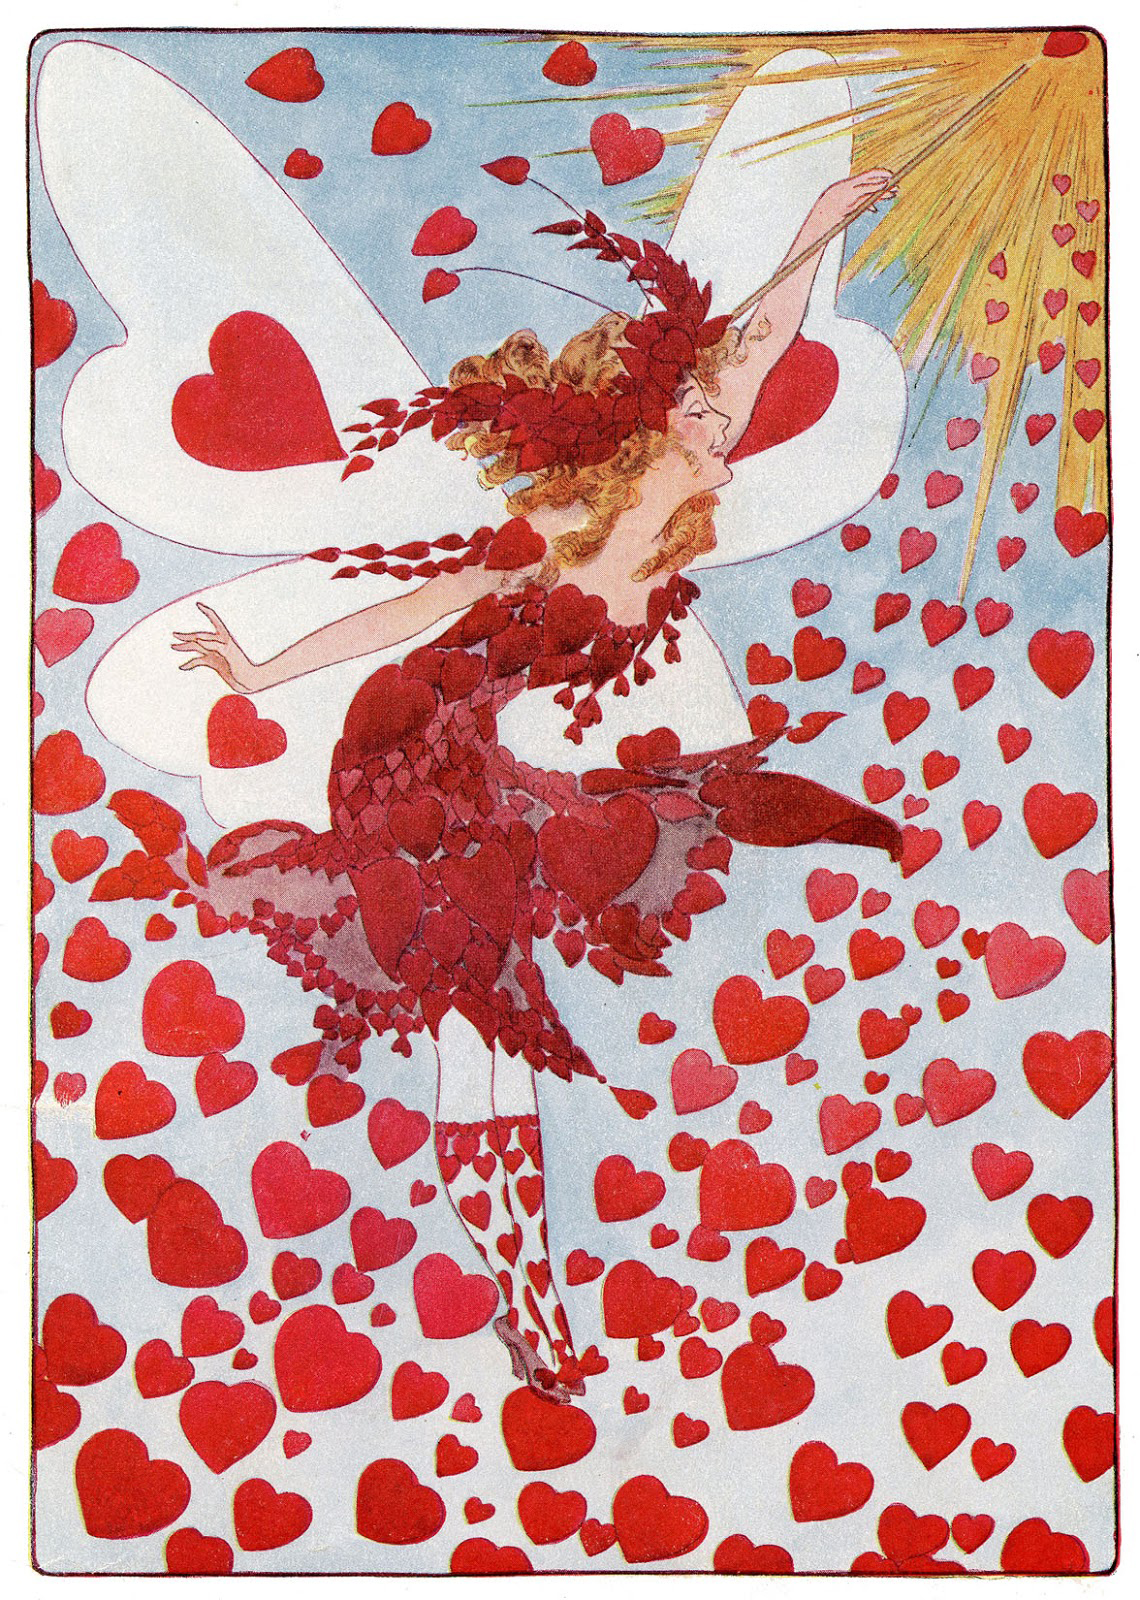 8 Vintage Valentine Fairy Images The Graphics Fairy